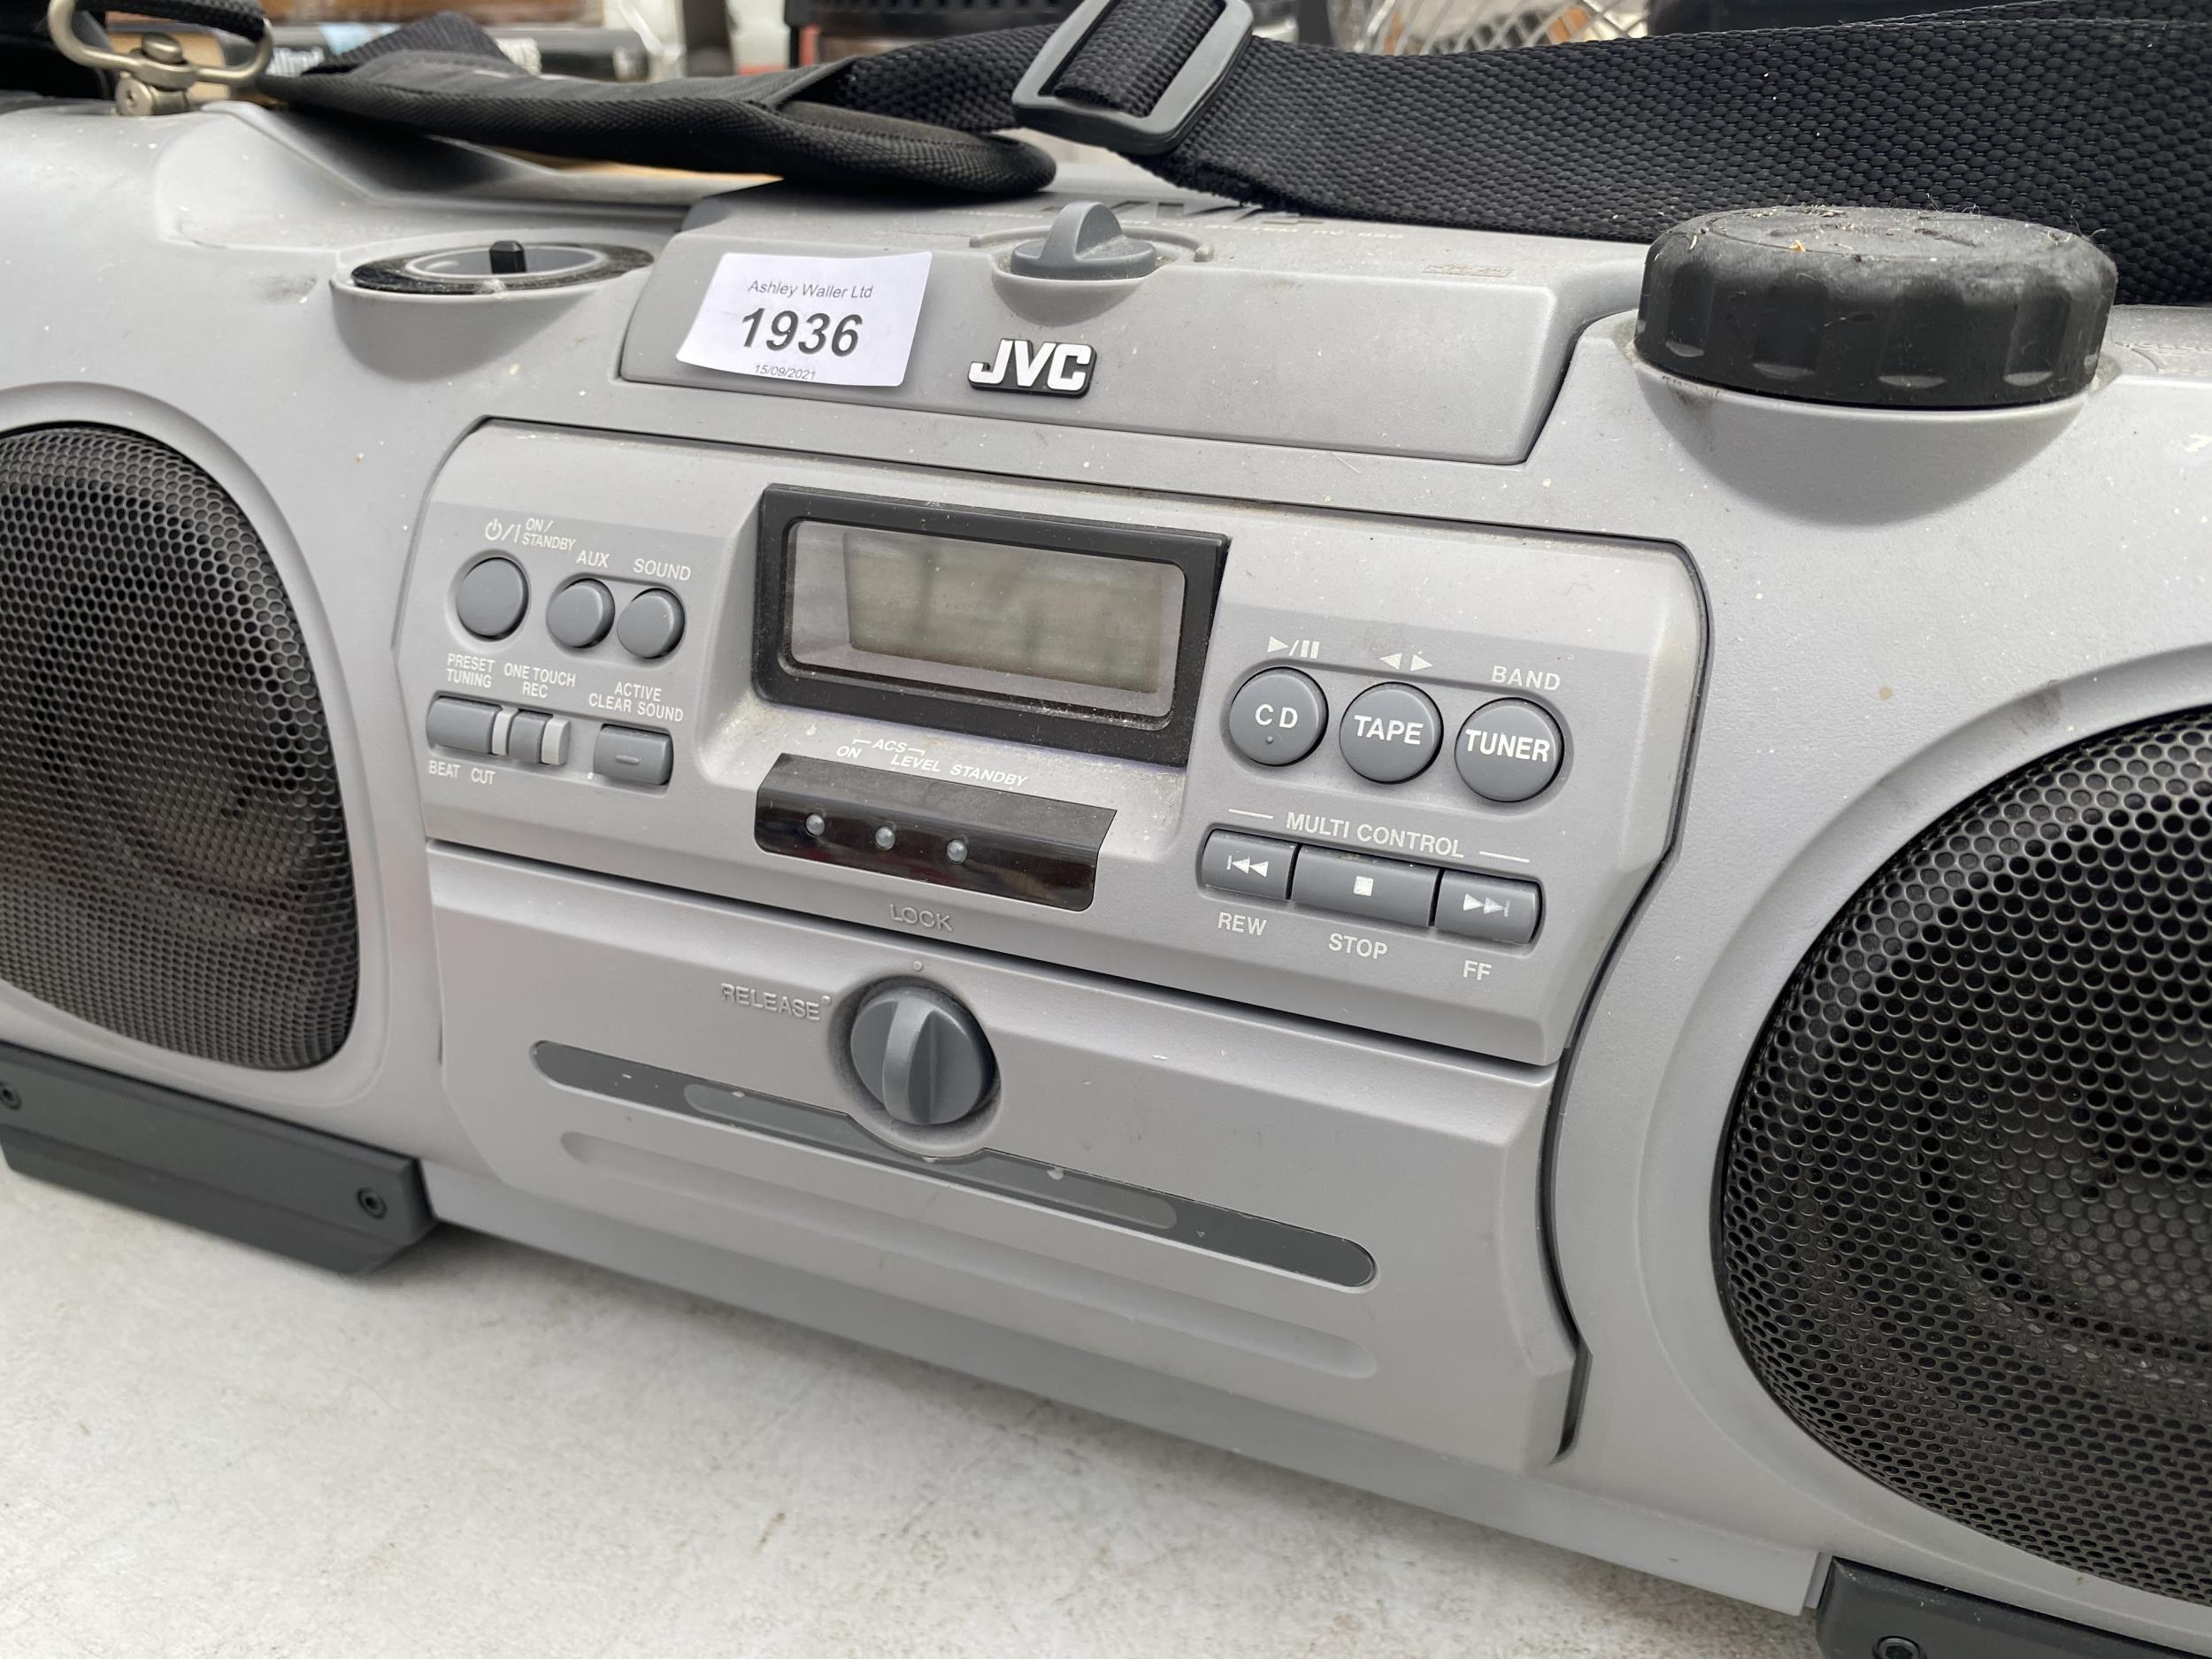 A JVC GHETTO BLASTER STEREO SYSTEM - Image 2 of 2